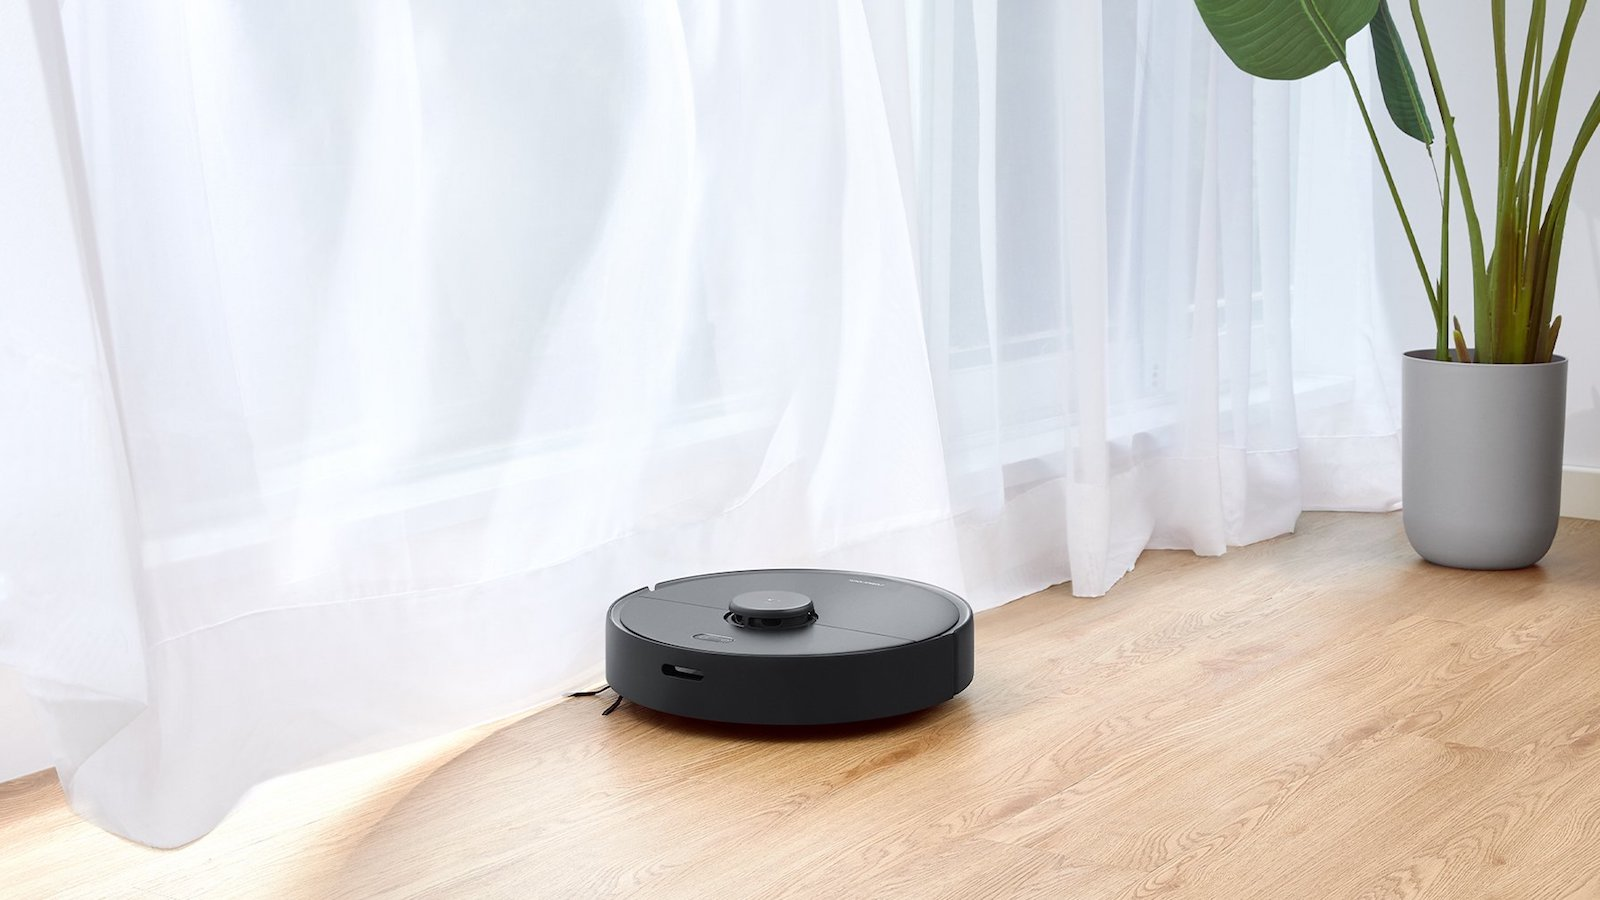 Roborock S4 Max Robot Vacuum captures 95% of particles including dander and mold